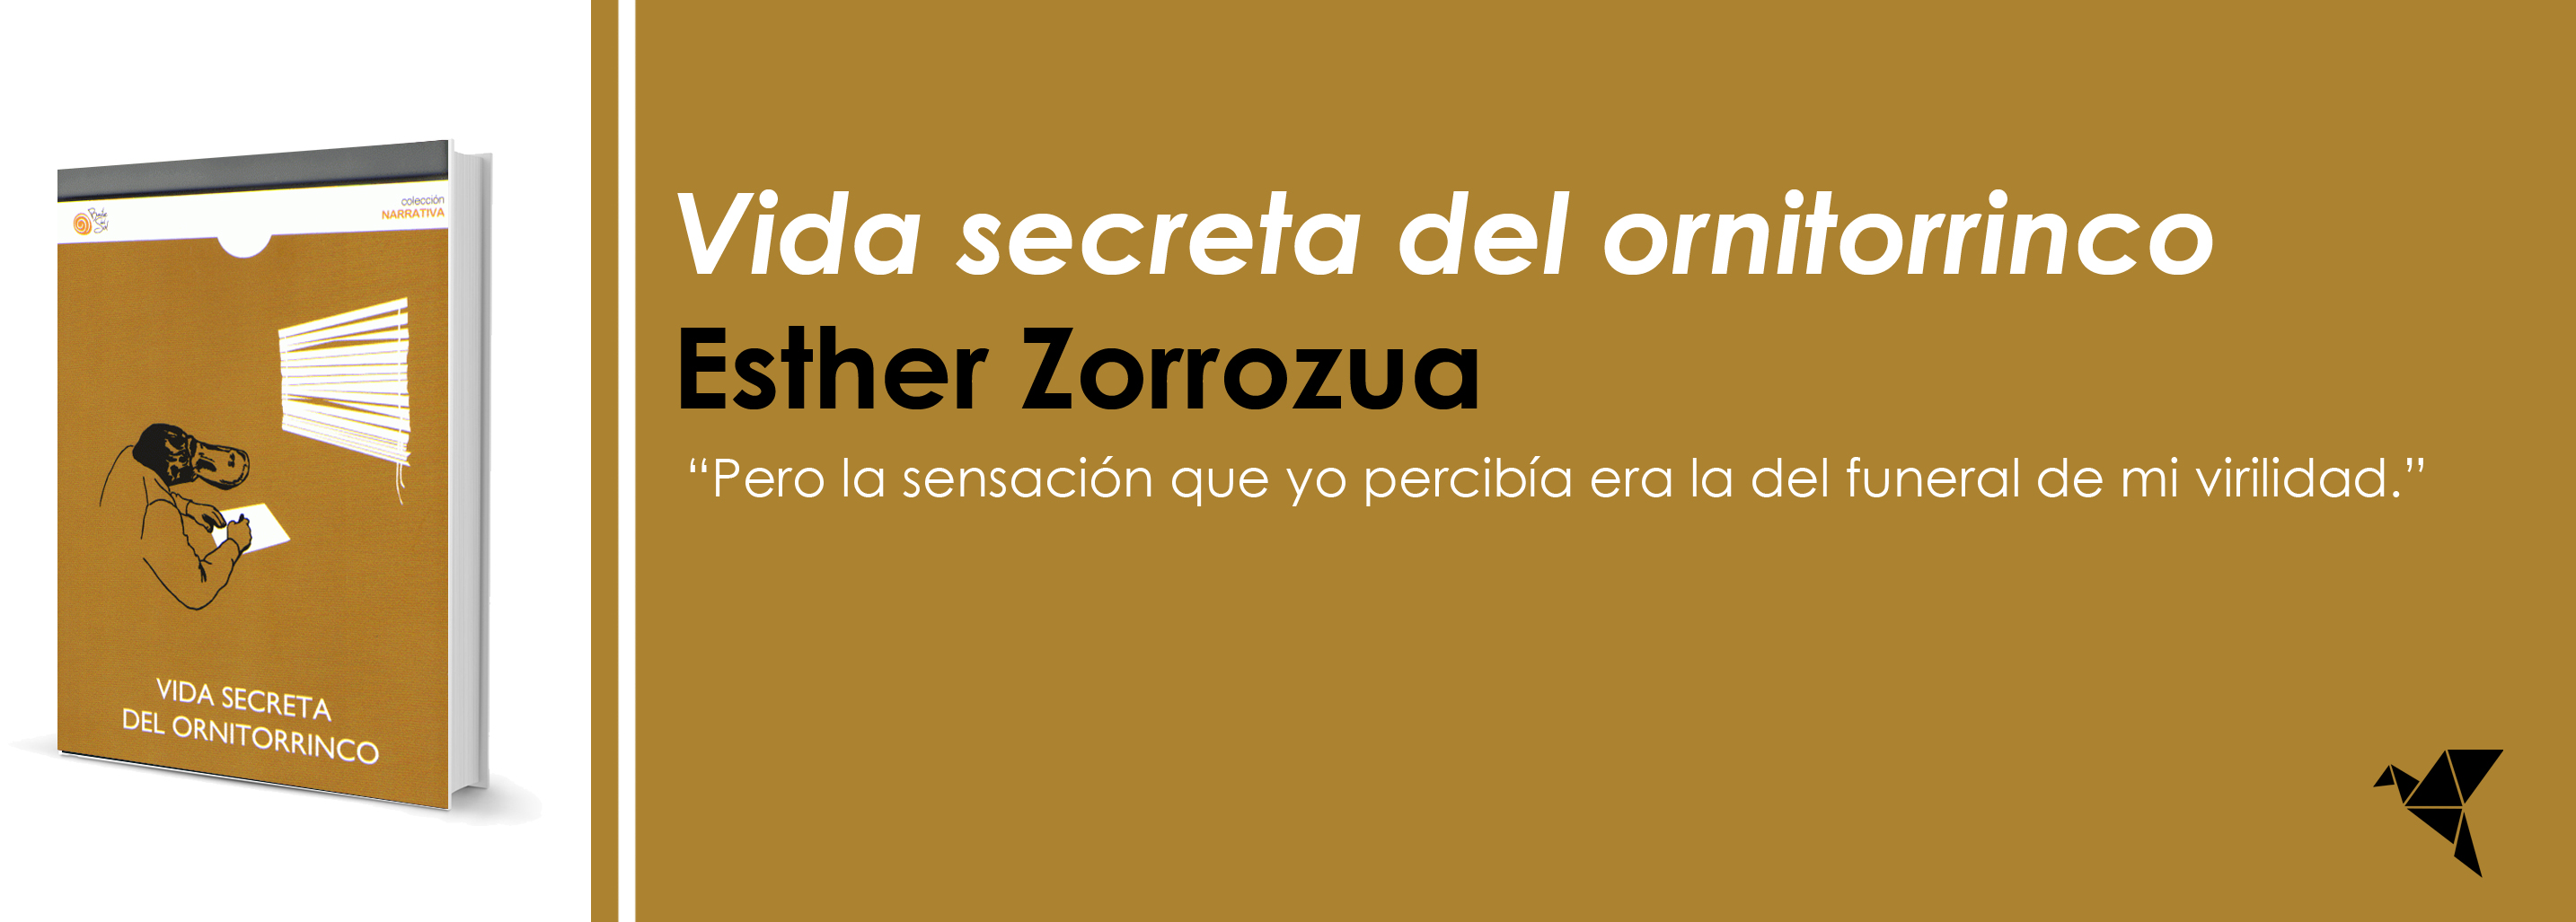 Vida secreta del ornitorrinco, de Esther Zorrozua